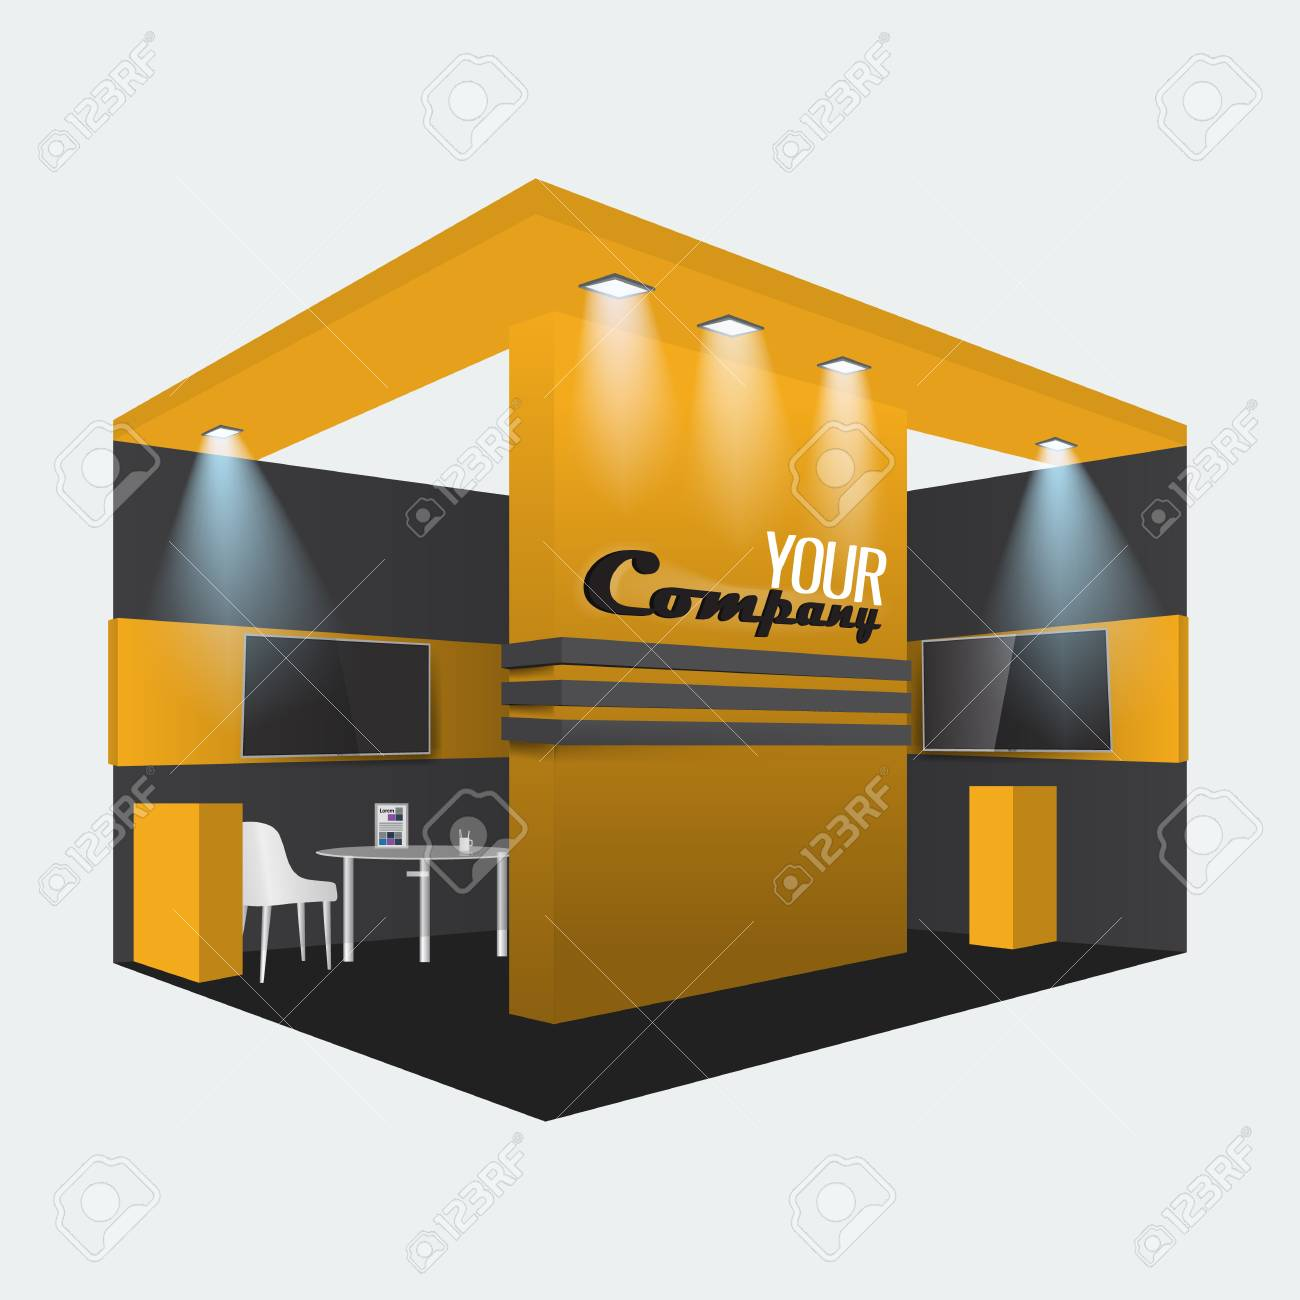 Exhibition stand display trade booth mockup design, orange and